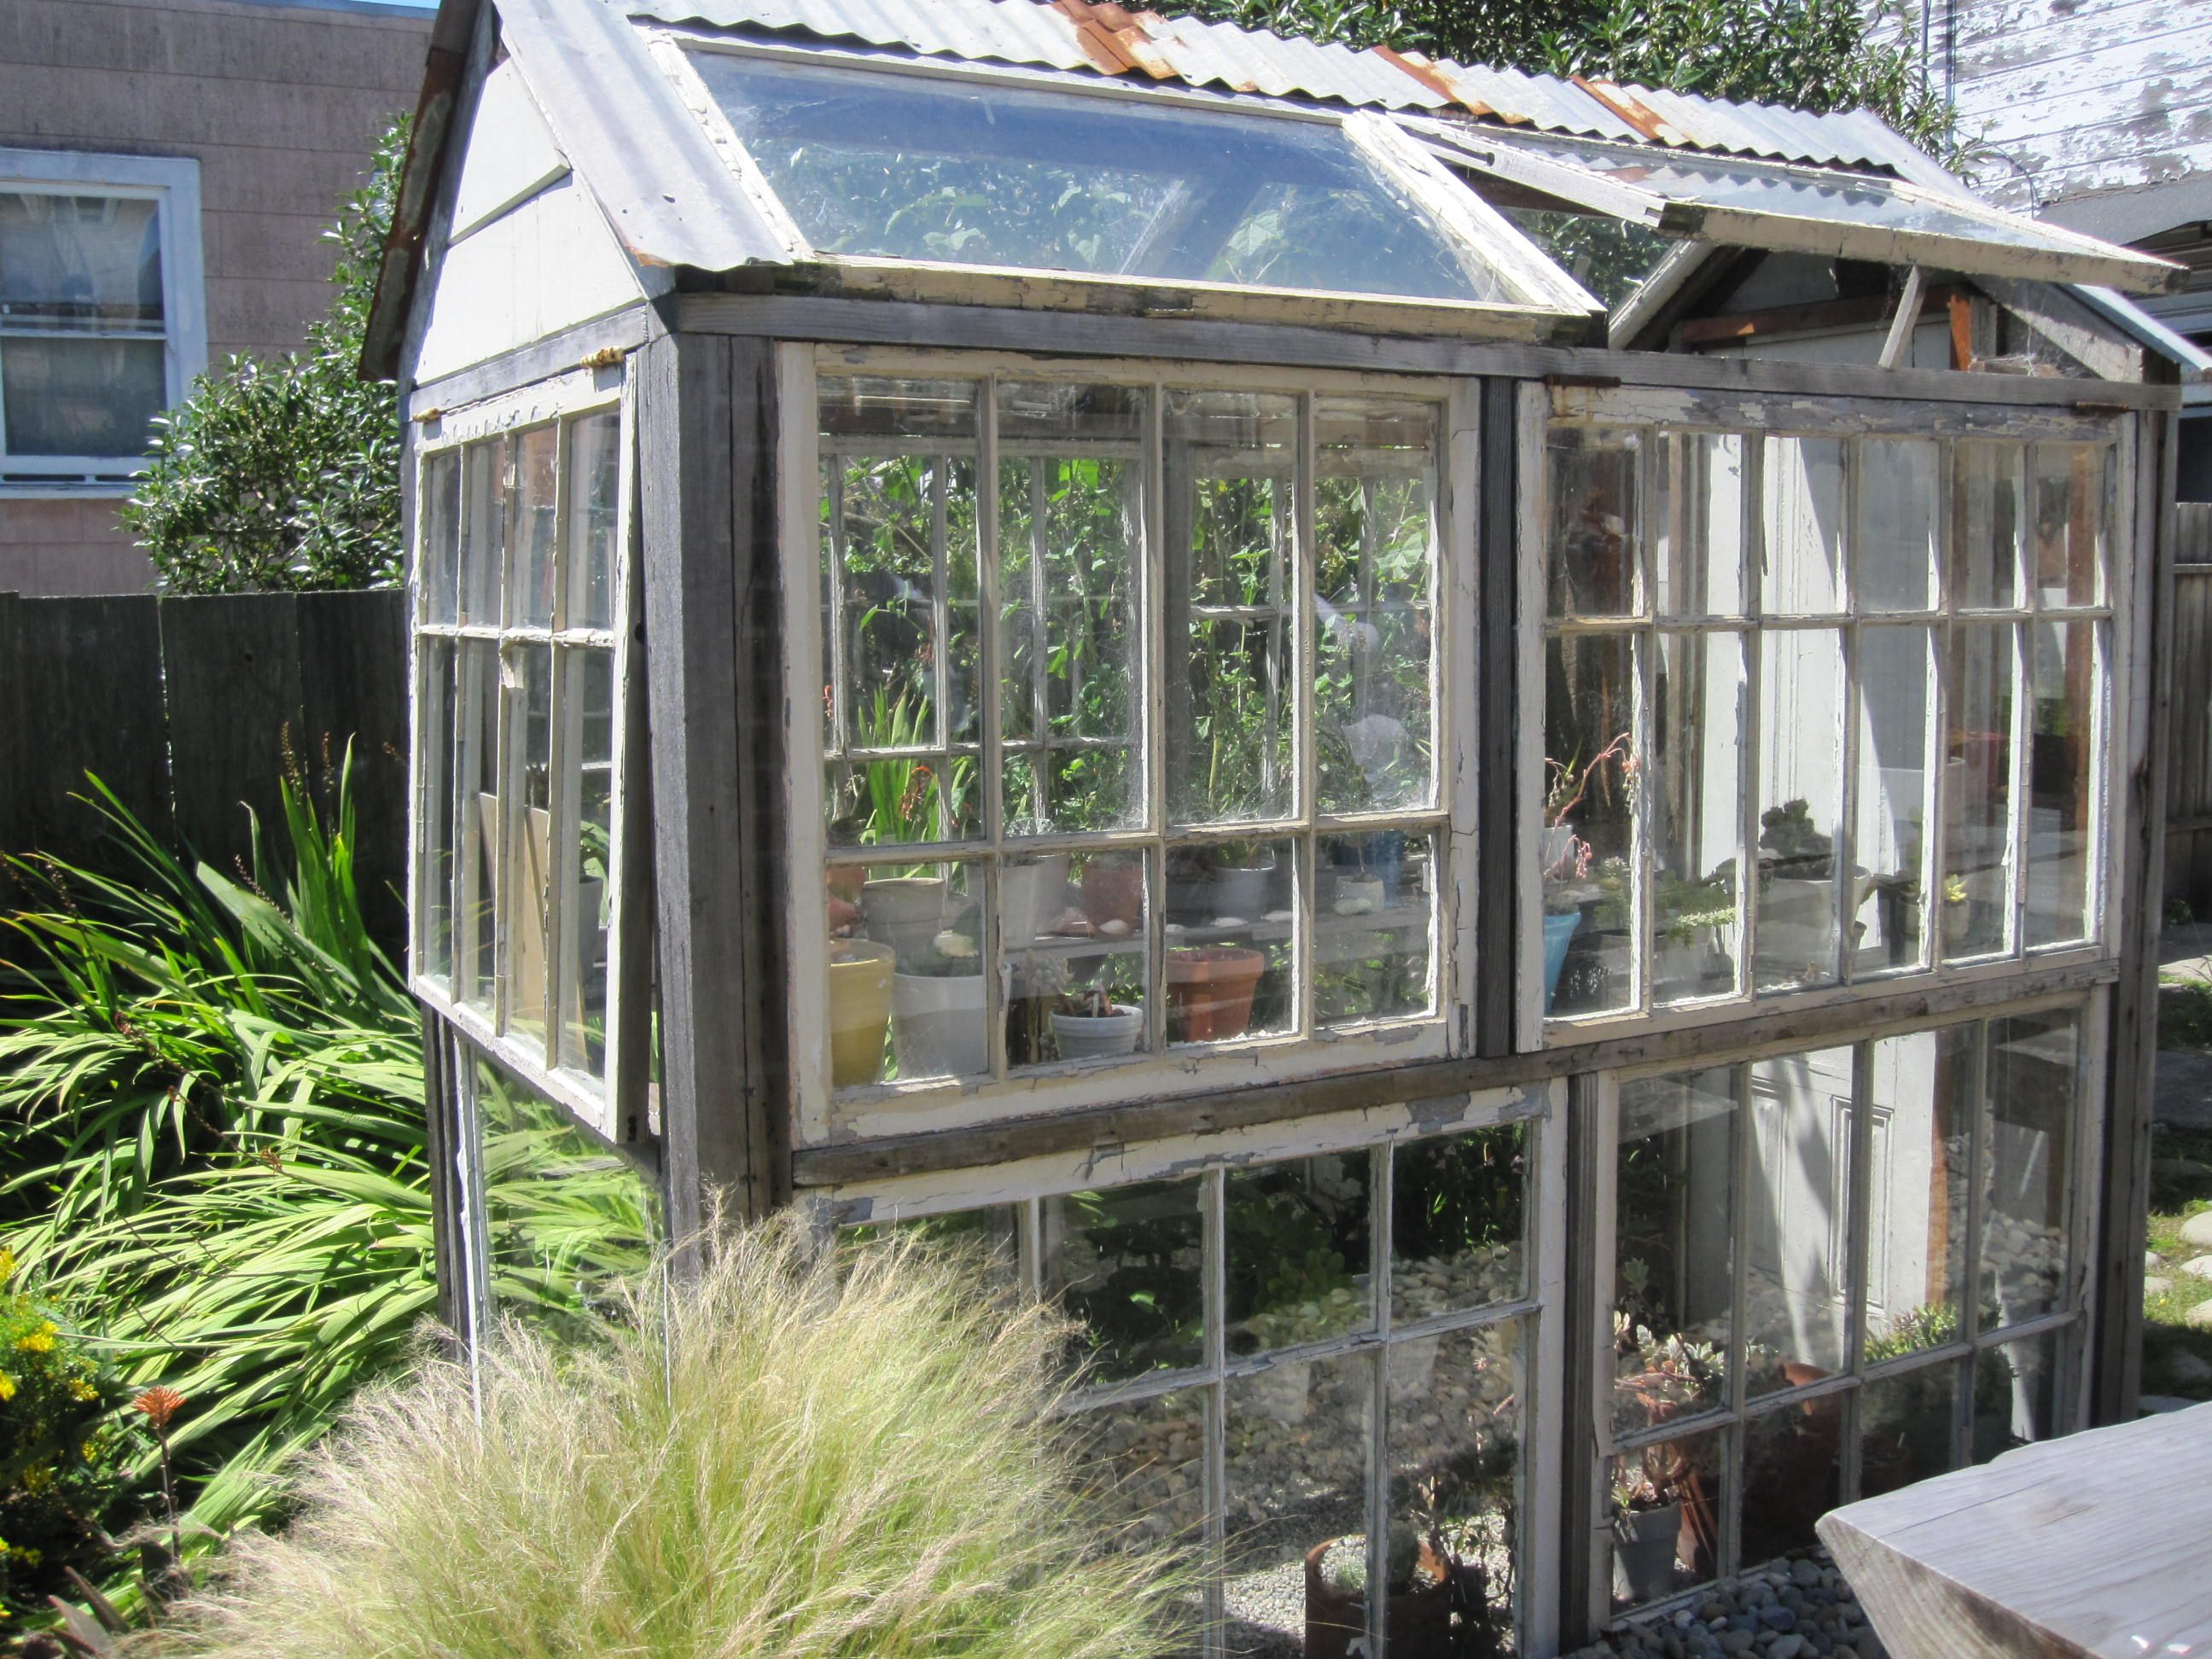 How Do I Build A Greenhouse In My Backyard | Homideal